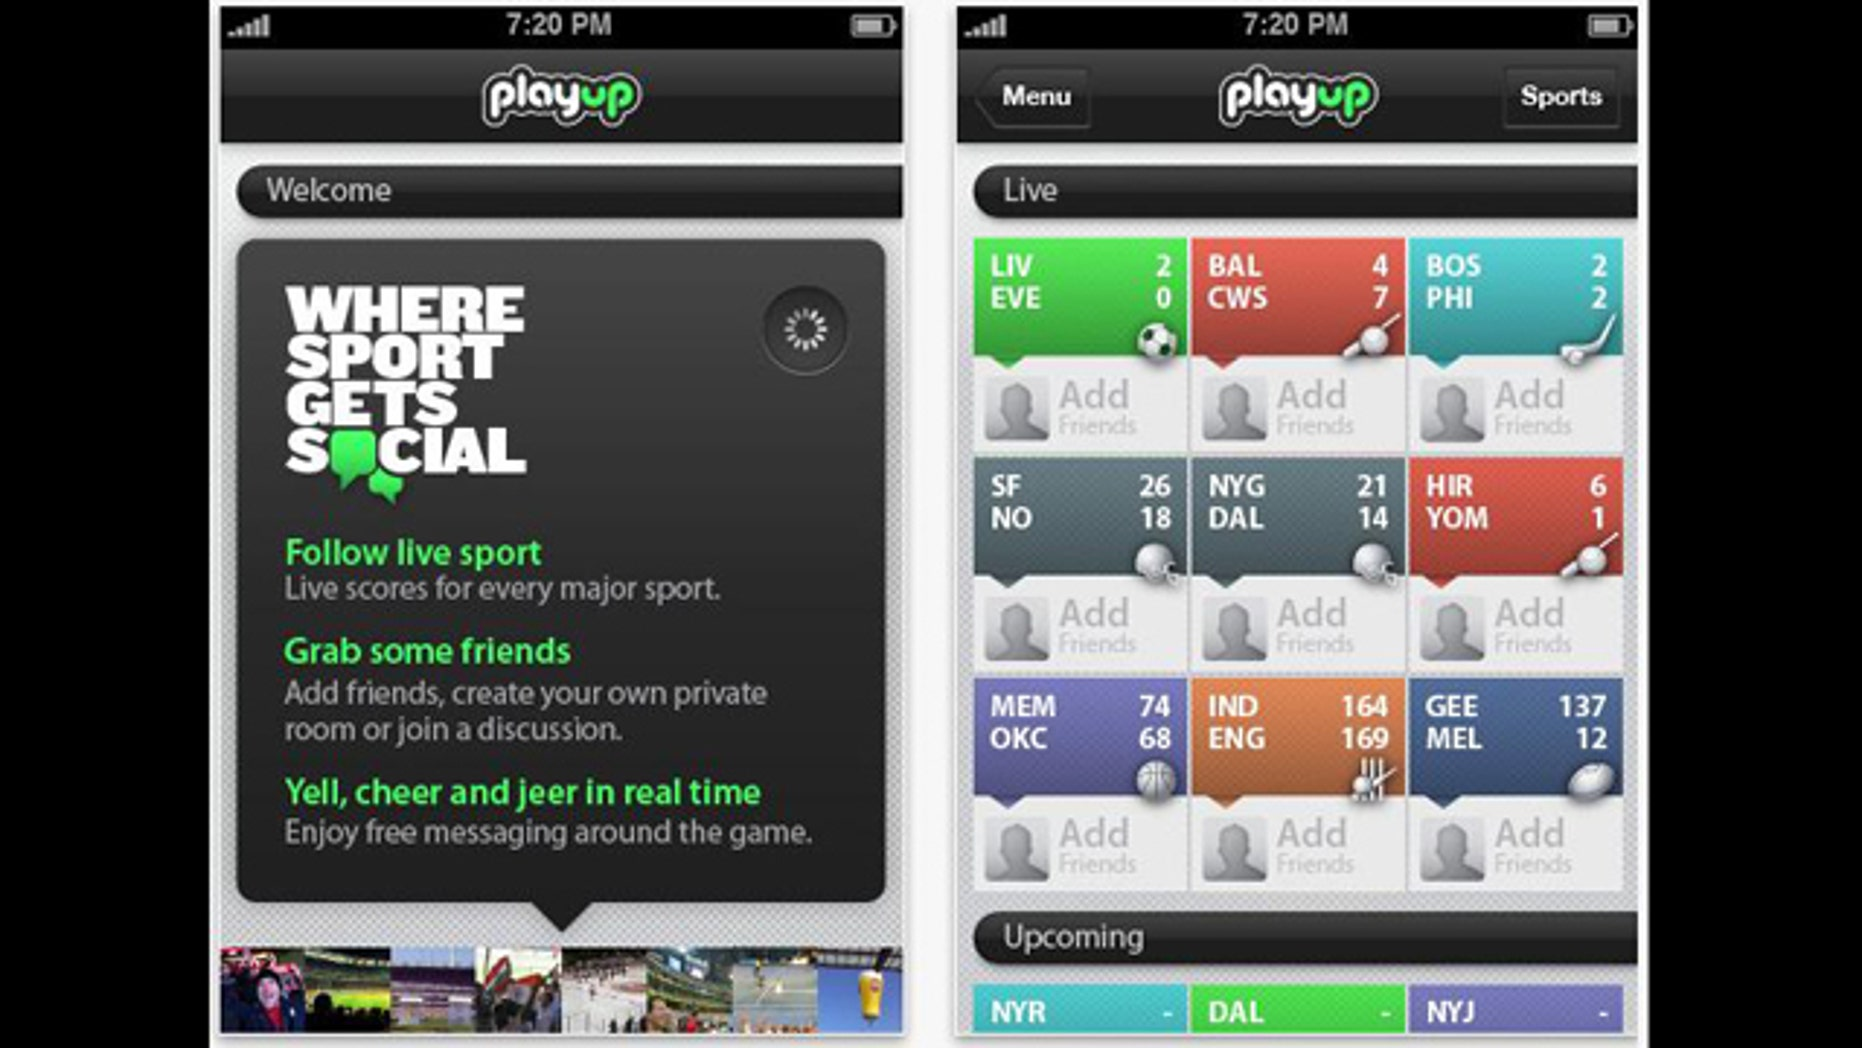 The PlayUp application lets you follow a live sporting event with your friends no matter where they are around the country.